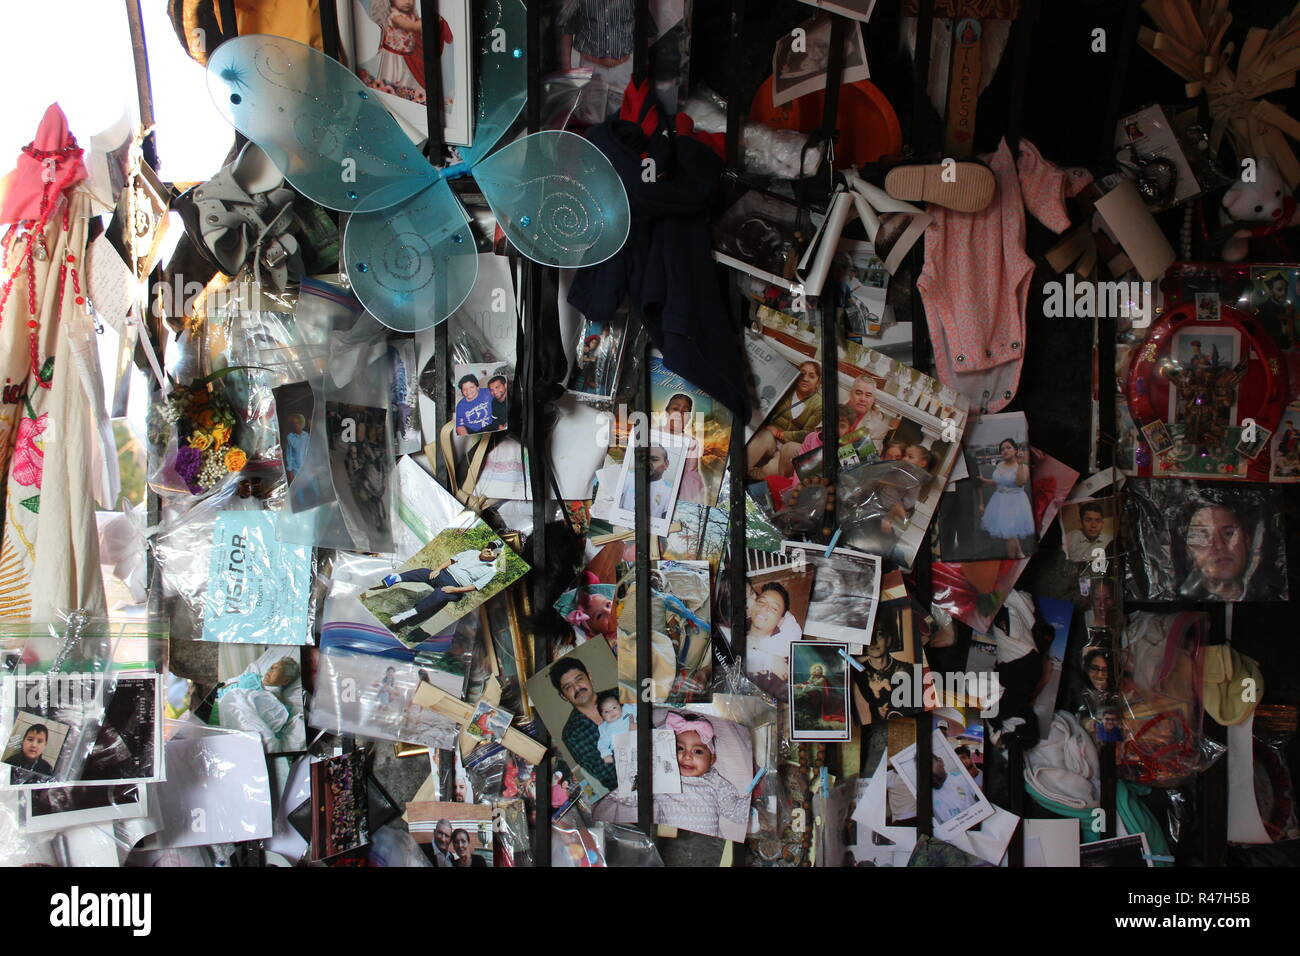 Private belongings, pictures, photos, memories left as a request at Our Lady of Guadalupe Shrine, frequented by Hispanics and immigrants, located in Des Plaines, Illinois. - Stock Image